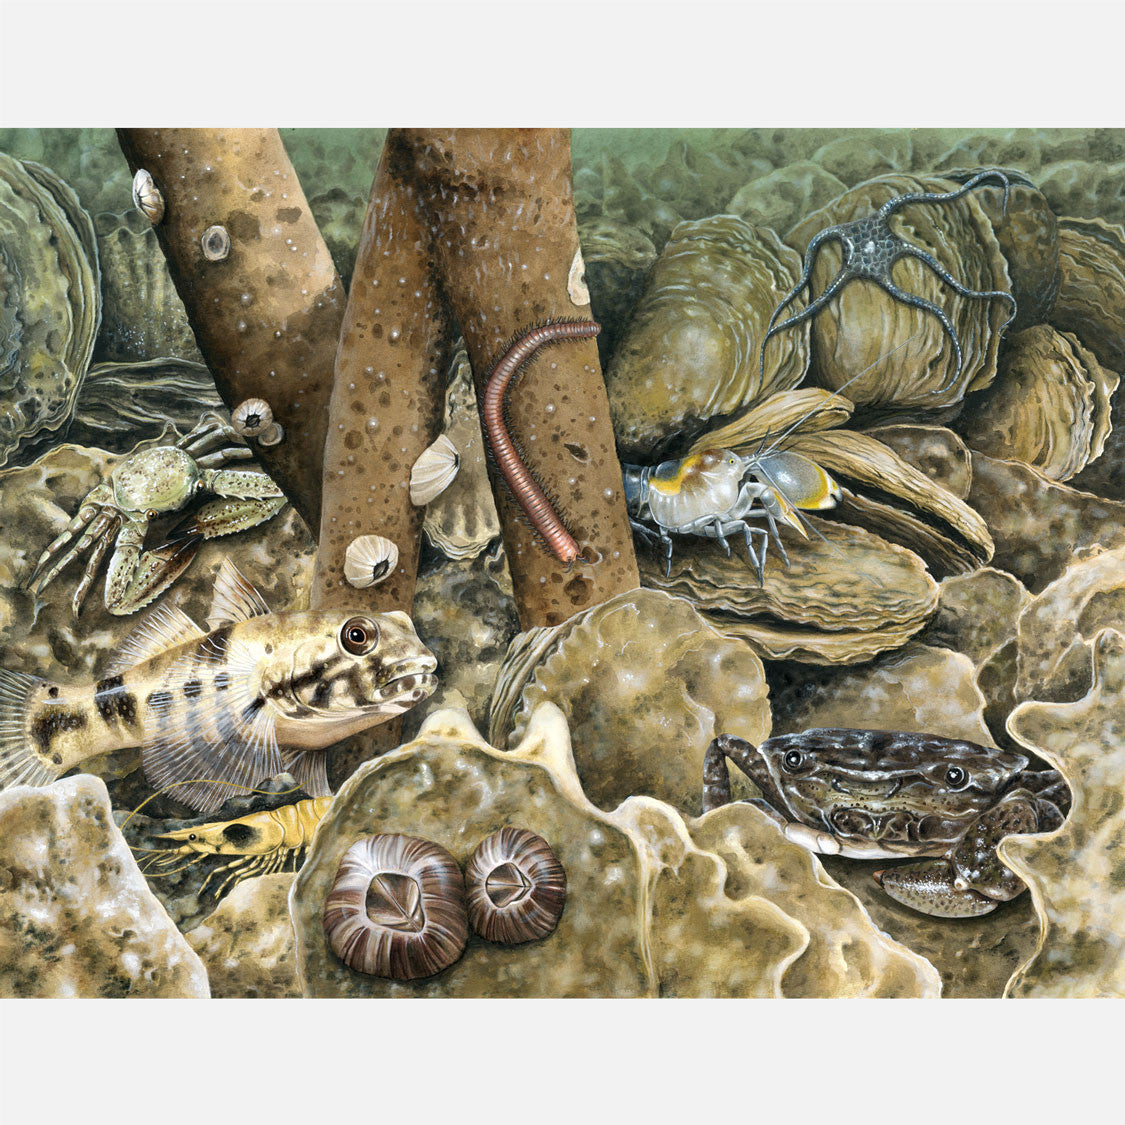 This beautiful, highly detailed and accurate illustration is of an oyster reef from a crab's eye view.